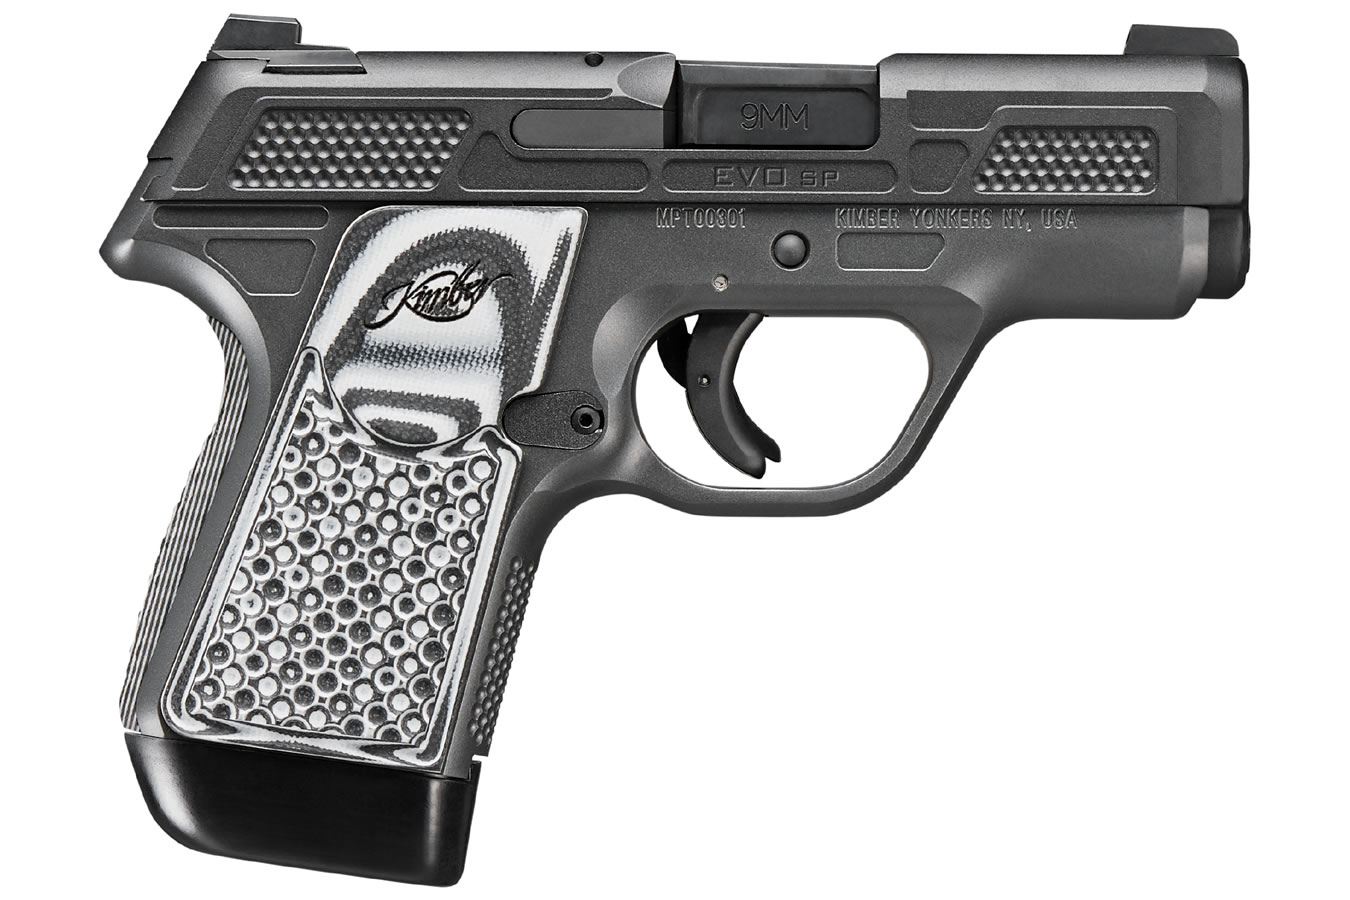 Evo SP Custom Shop 9mm Striker-Fired Pistol with Night Sights